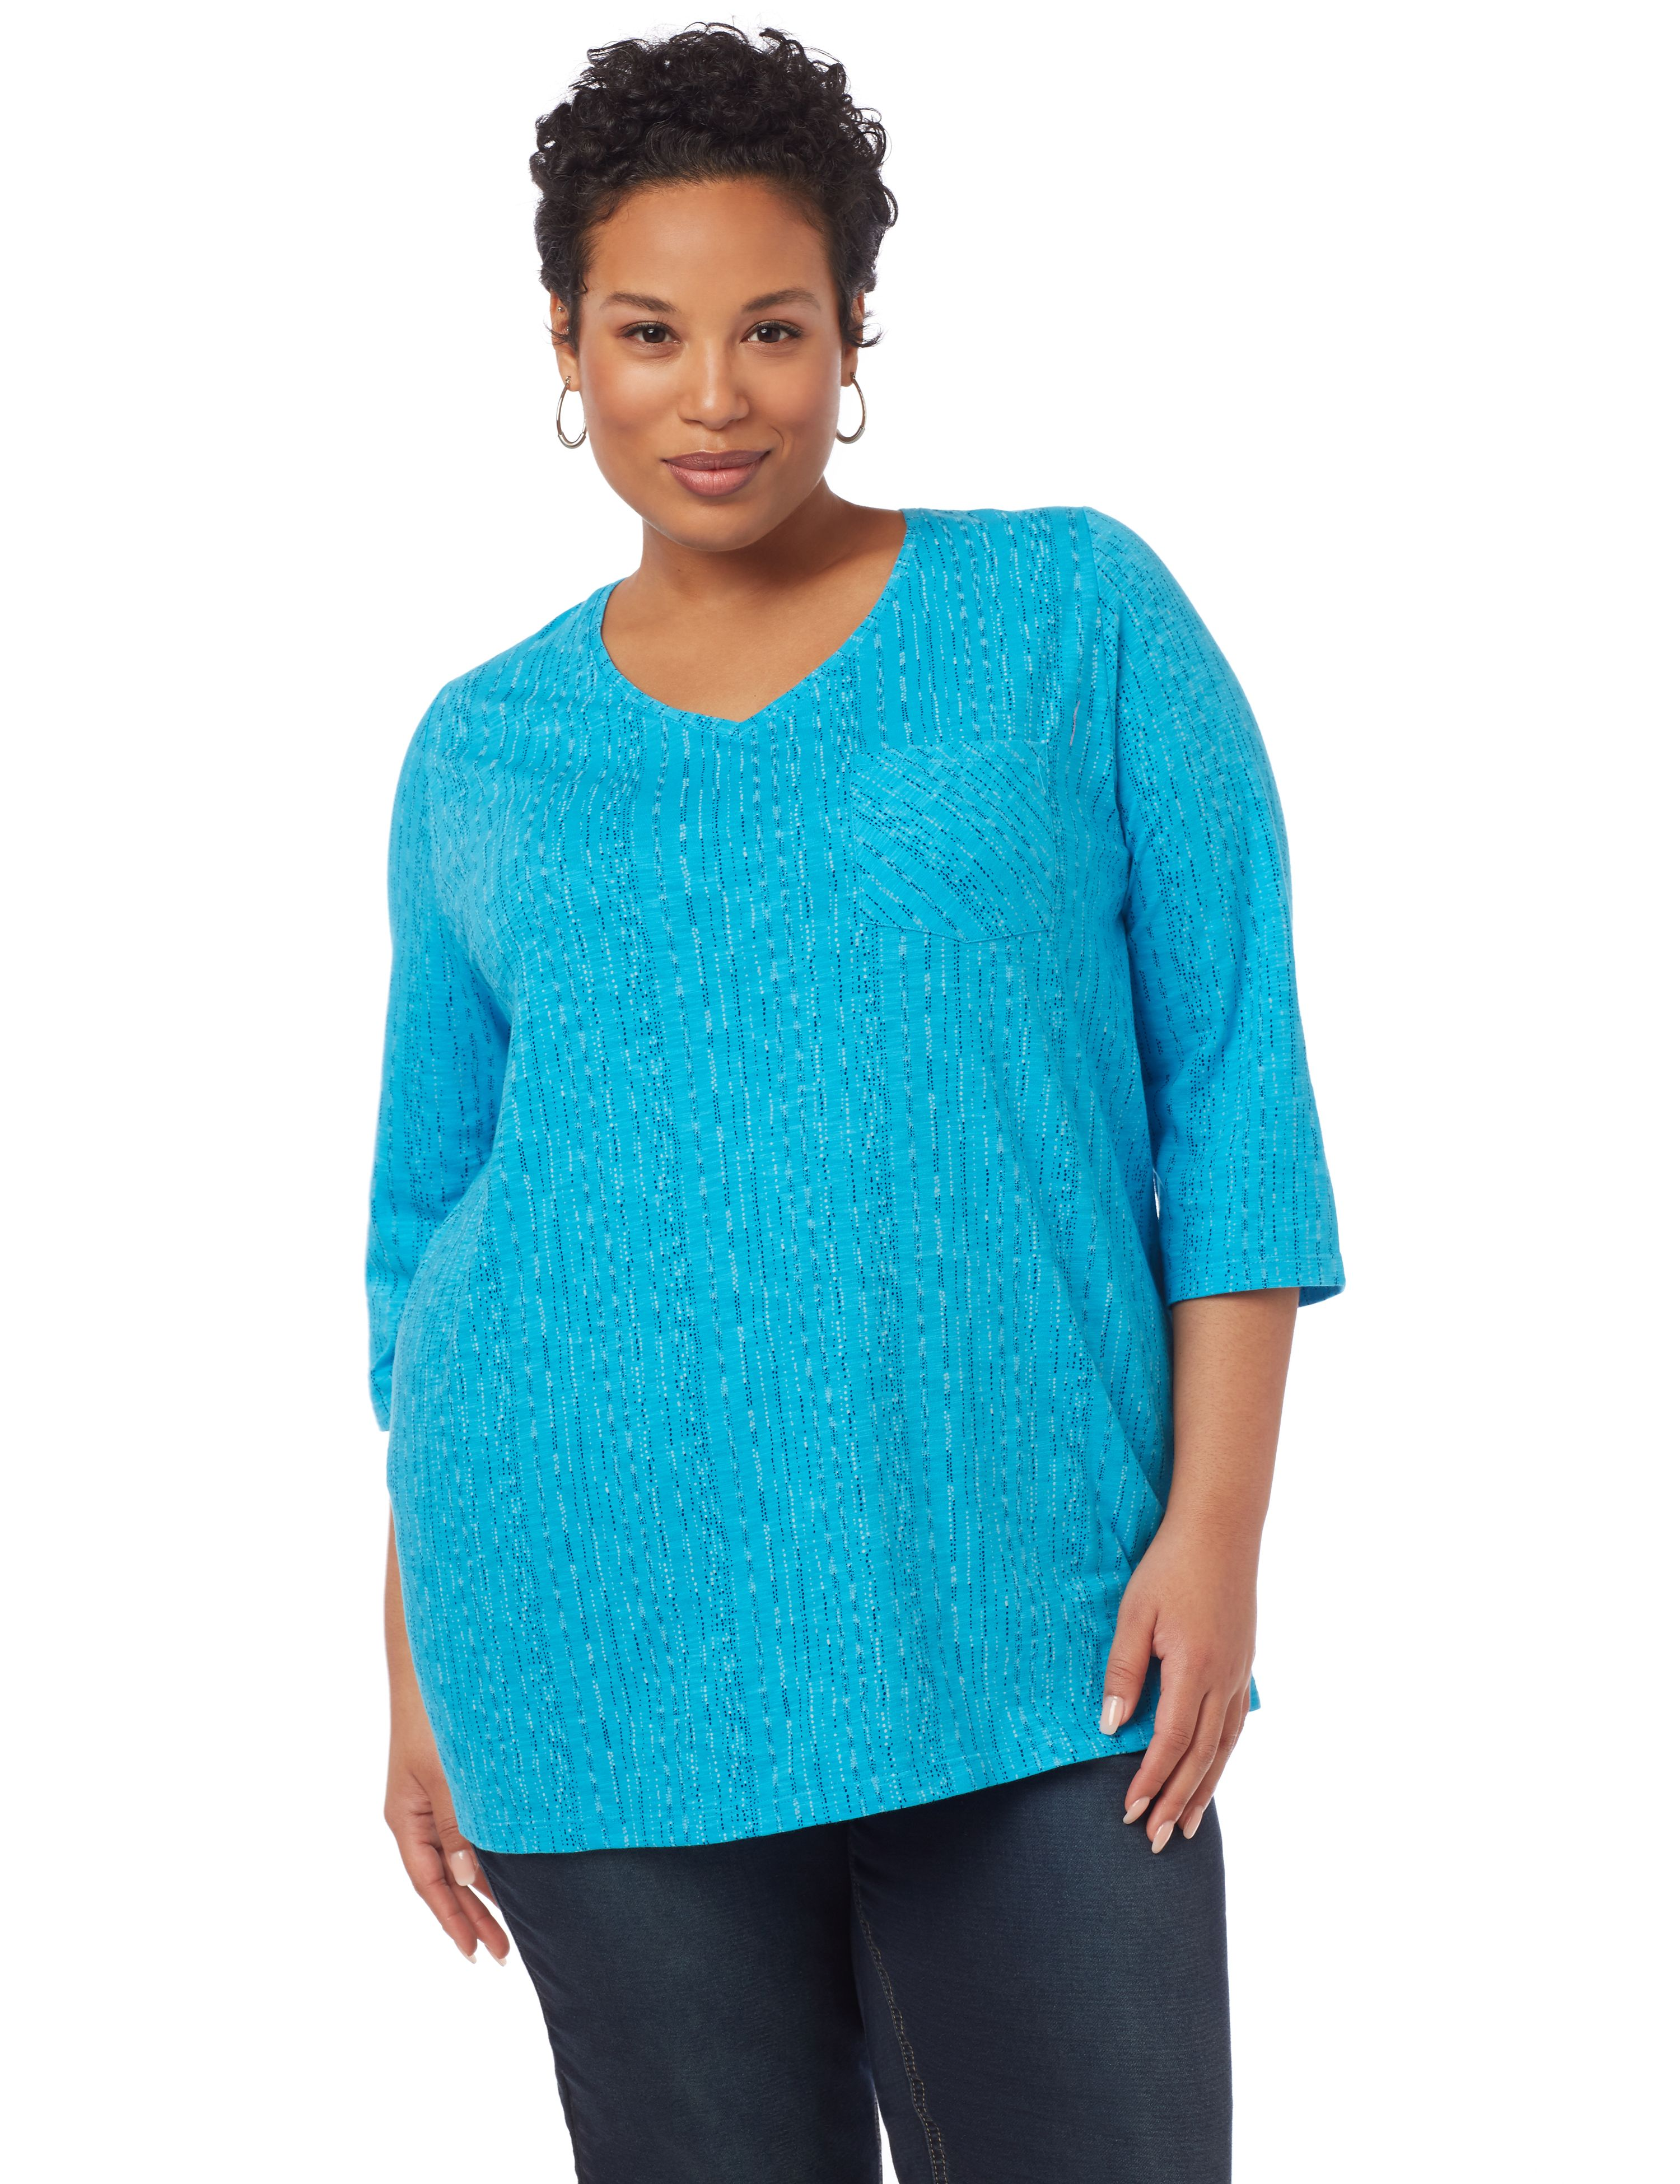 Evia Textured 3/4-Sleeve Top with Pocket 1091098 STIPLE STRIPE VNK MP-300094655